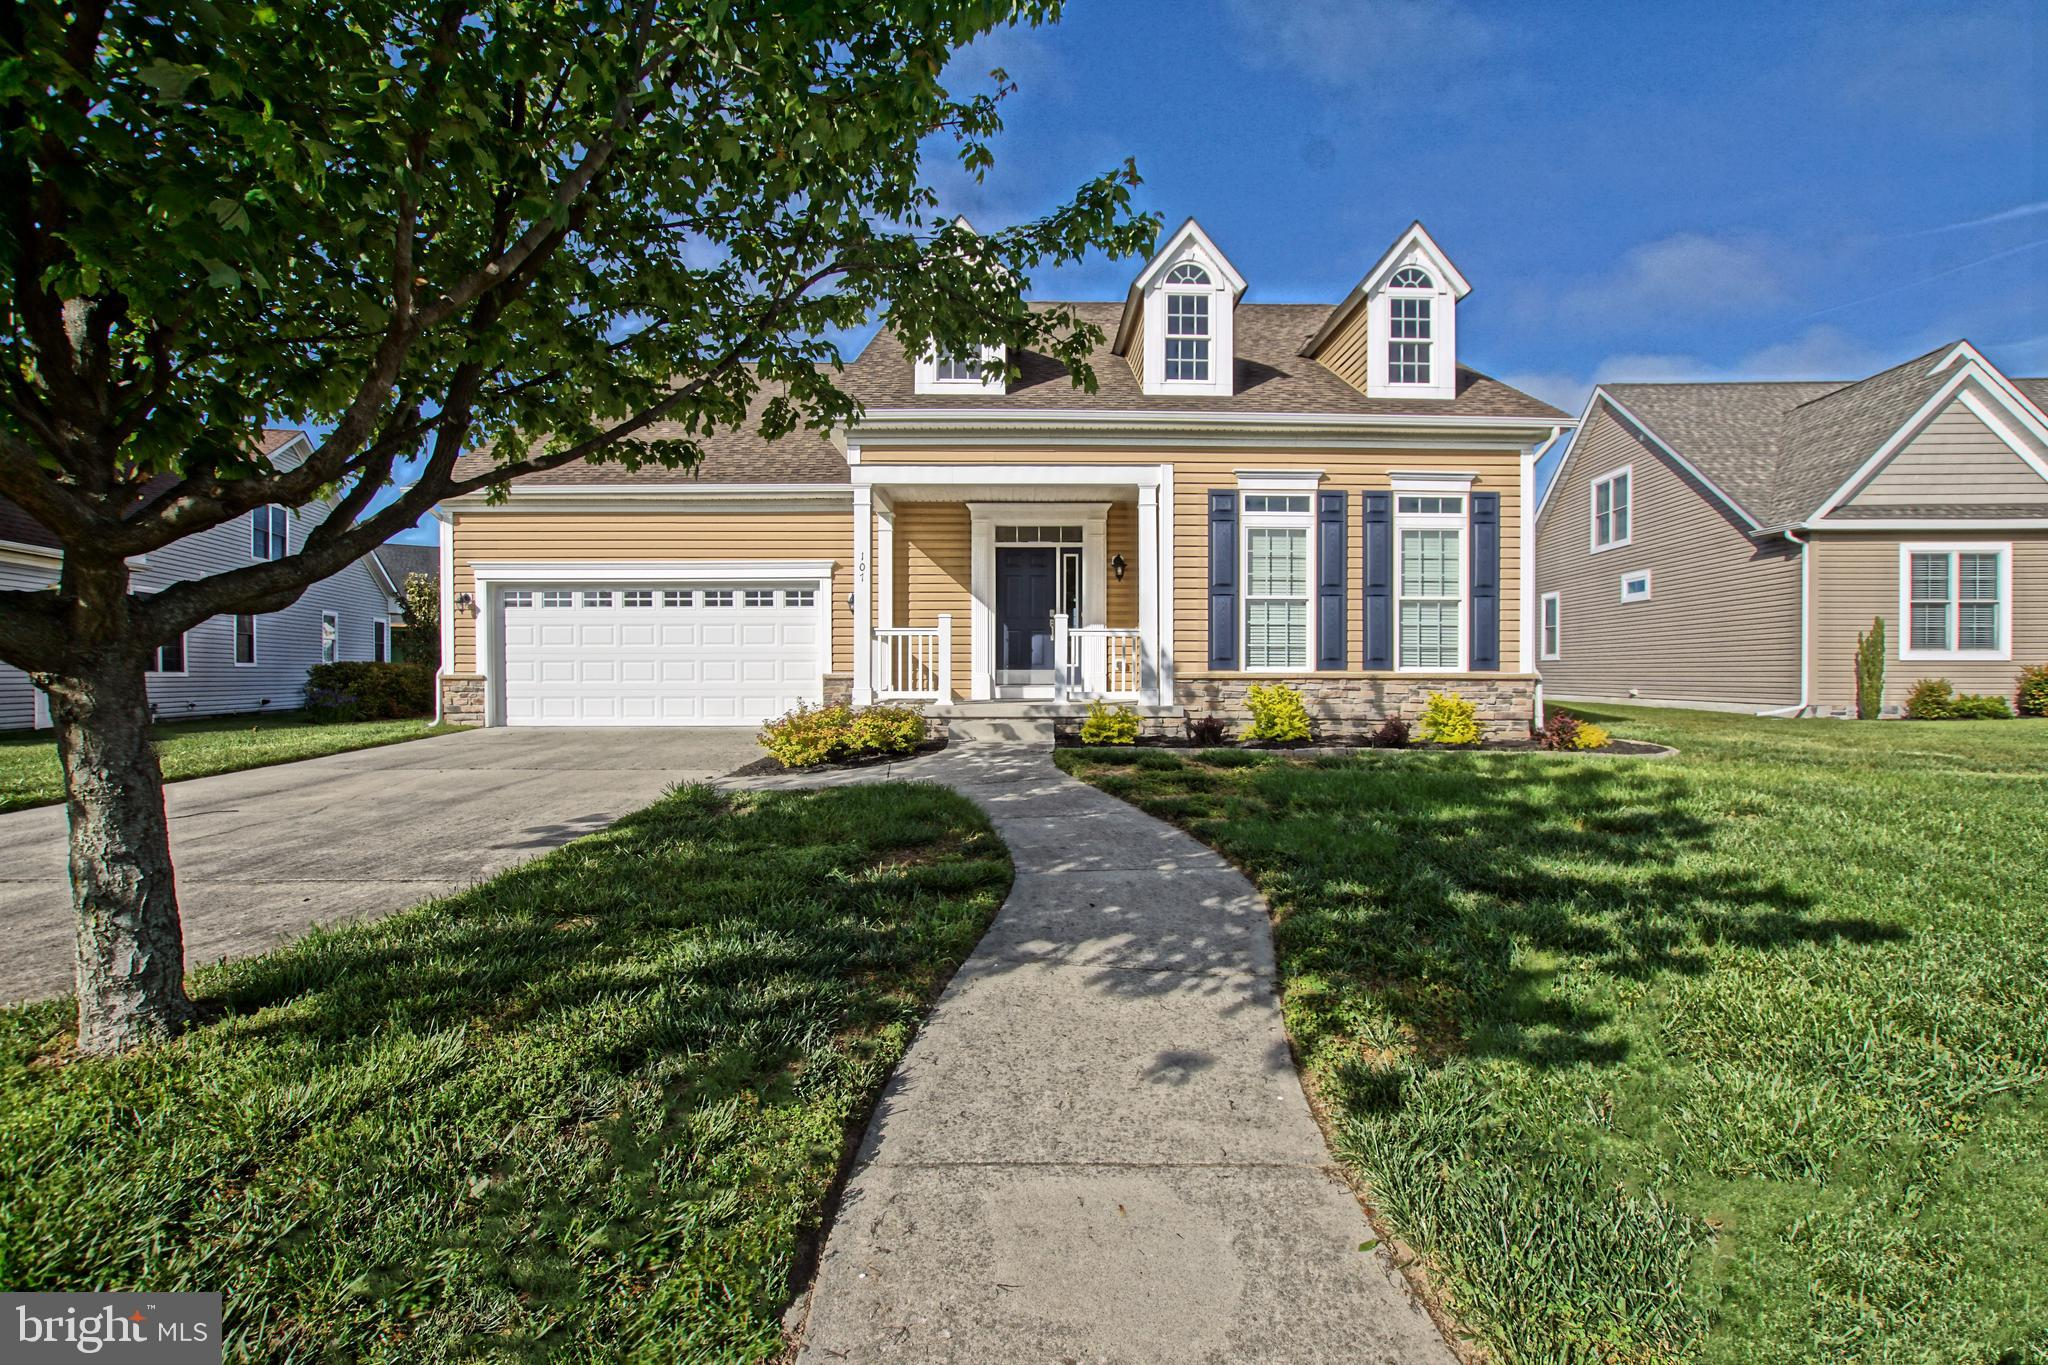 MOVE INTO TOWN! Lewes life is easy in this well-located 4 bedroom, 3 bath coastal inspired home with